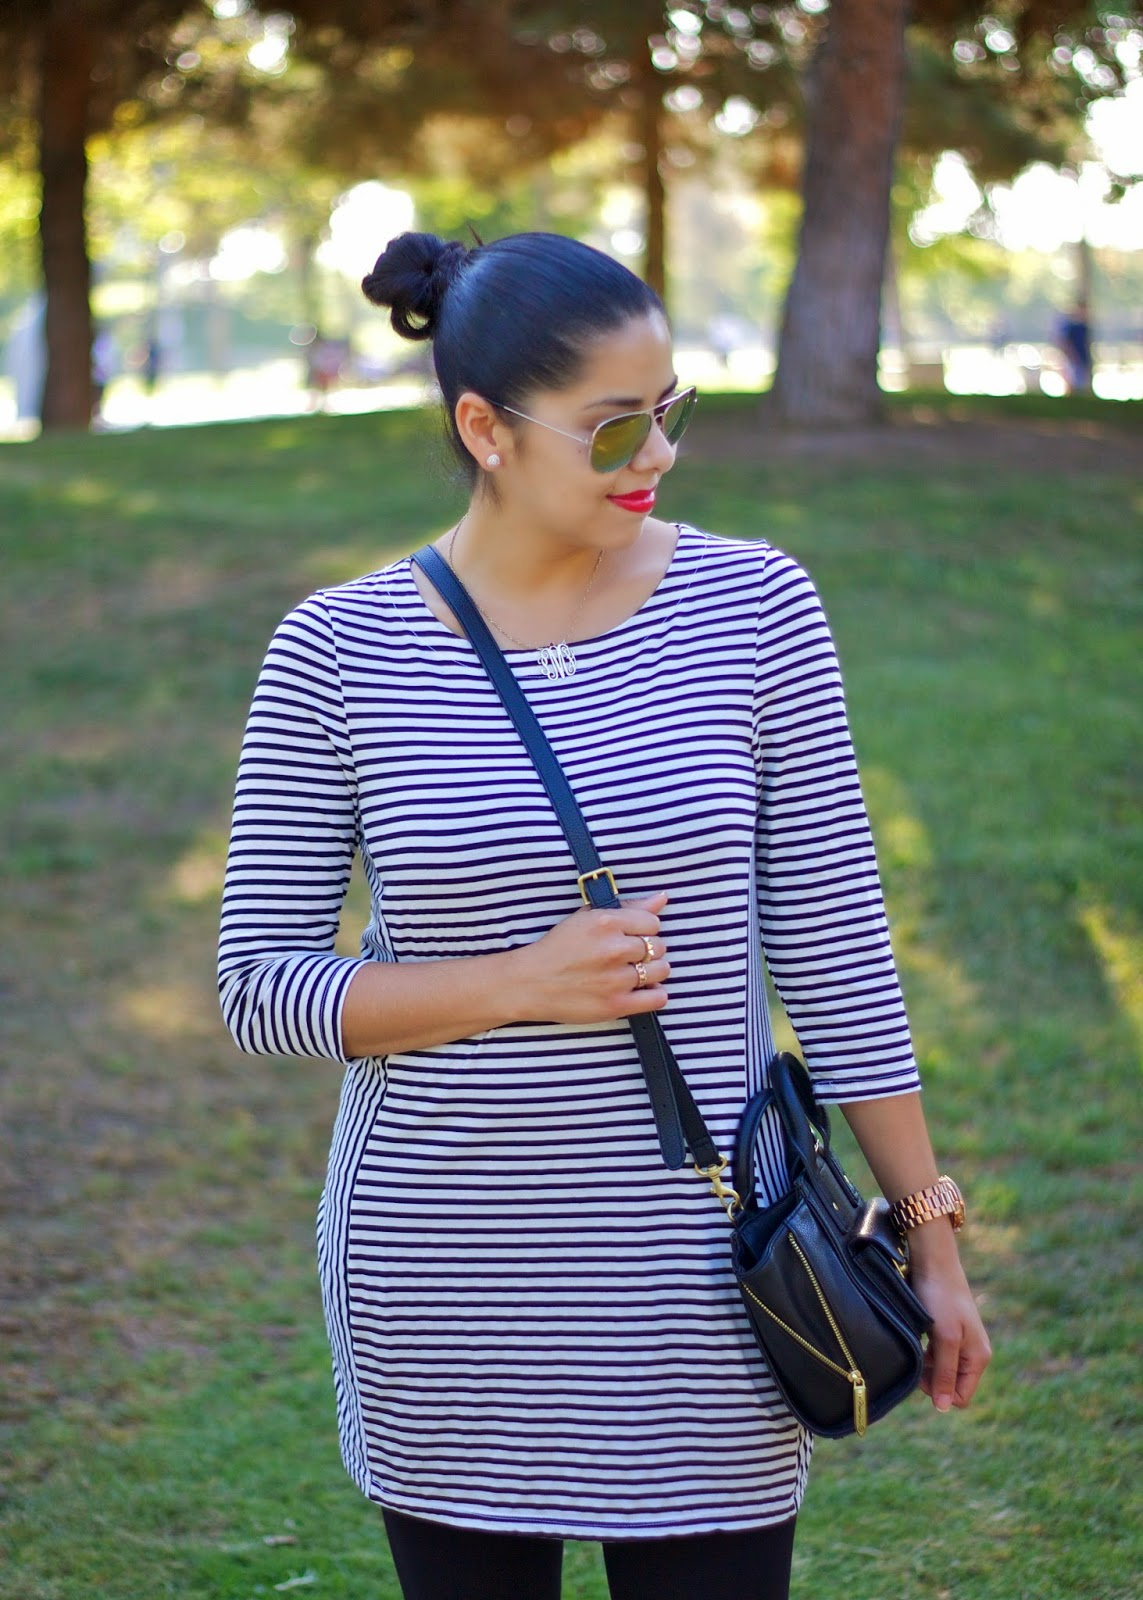 Striped Tunic, How to wear a striped tunic, what to wear with stripes, high bun in an outfit, comfortable and stylish outfit